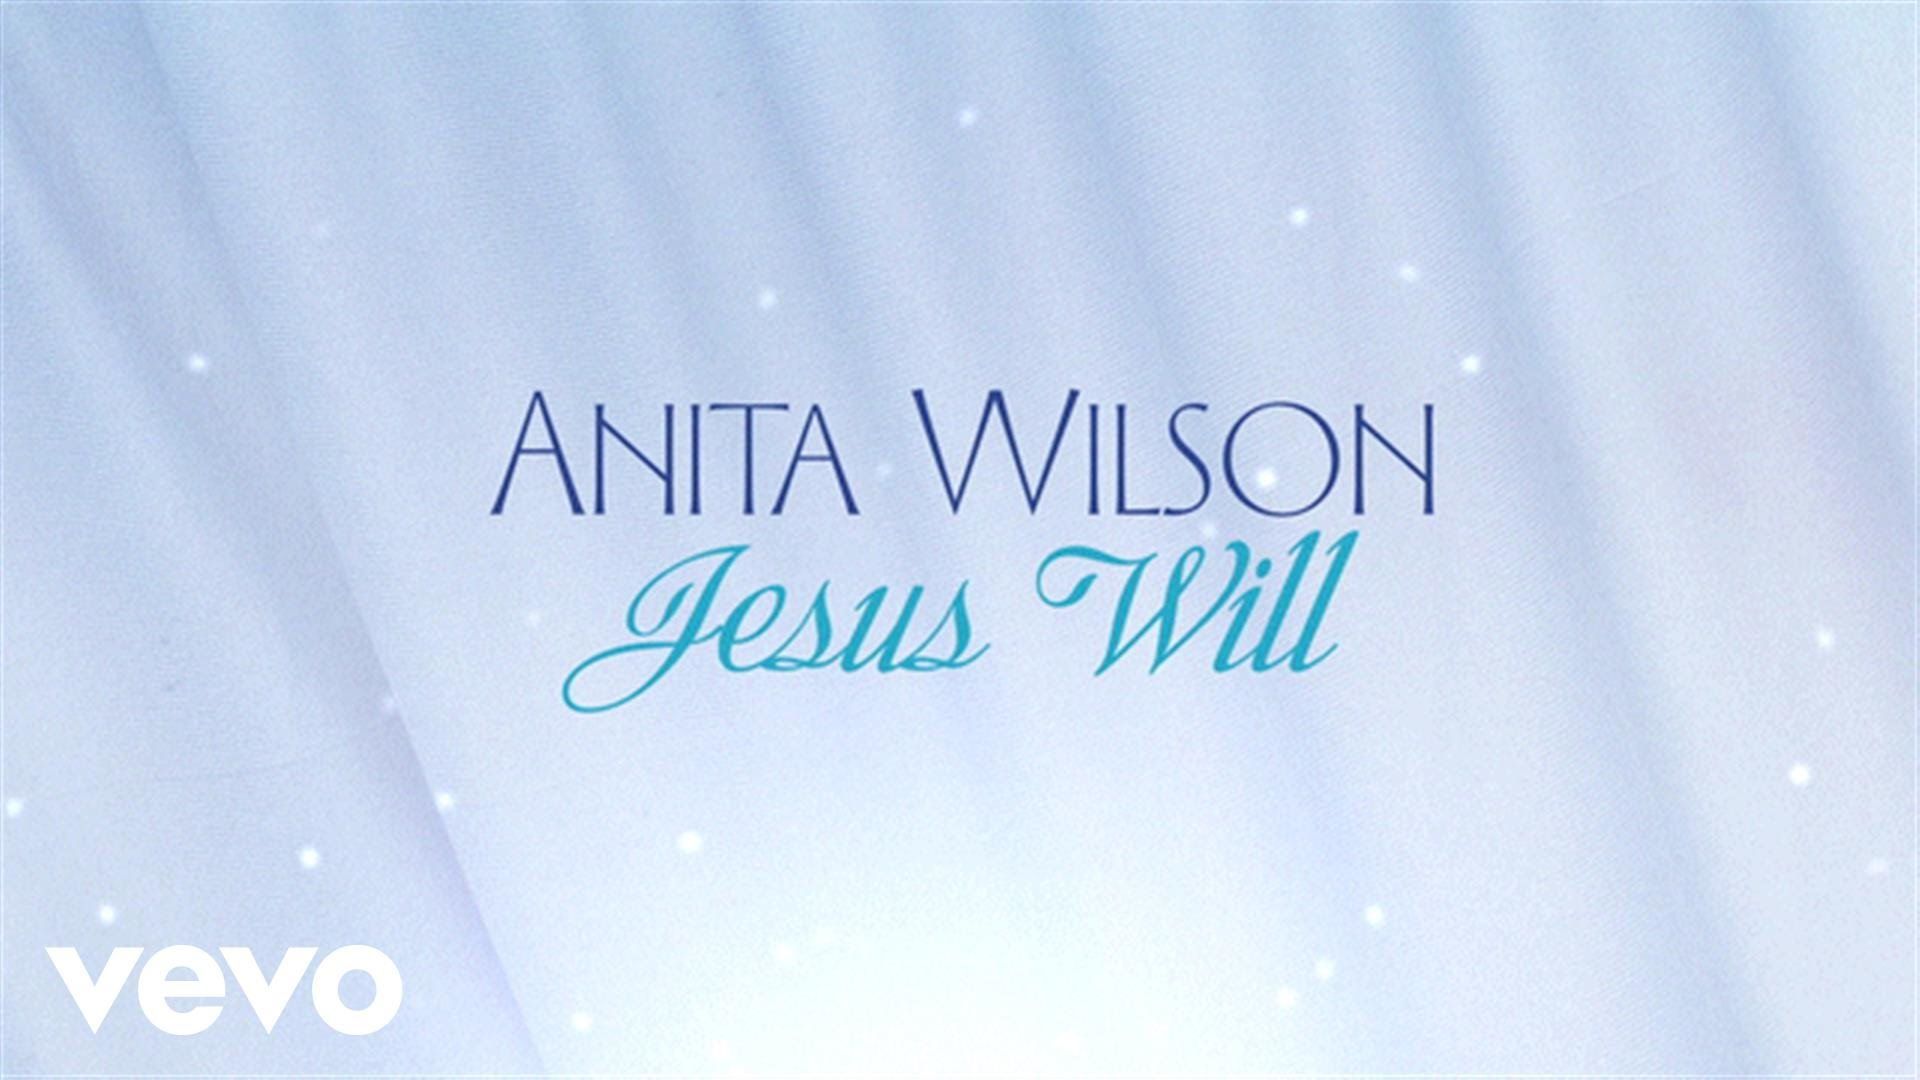 Anita Wilson Jesus Will Lyrics Praise And Worship Music Lyrics Youtube